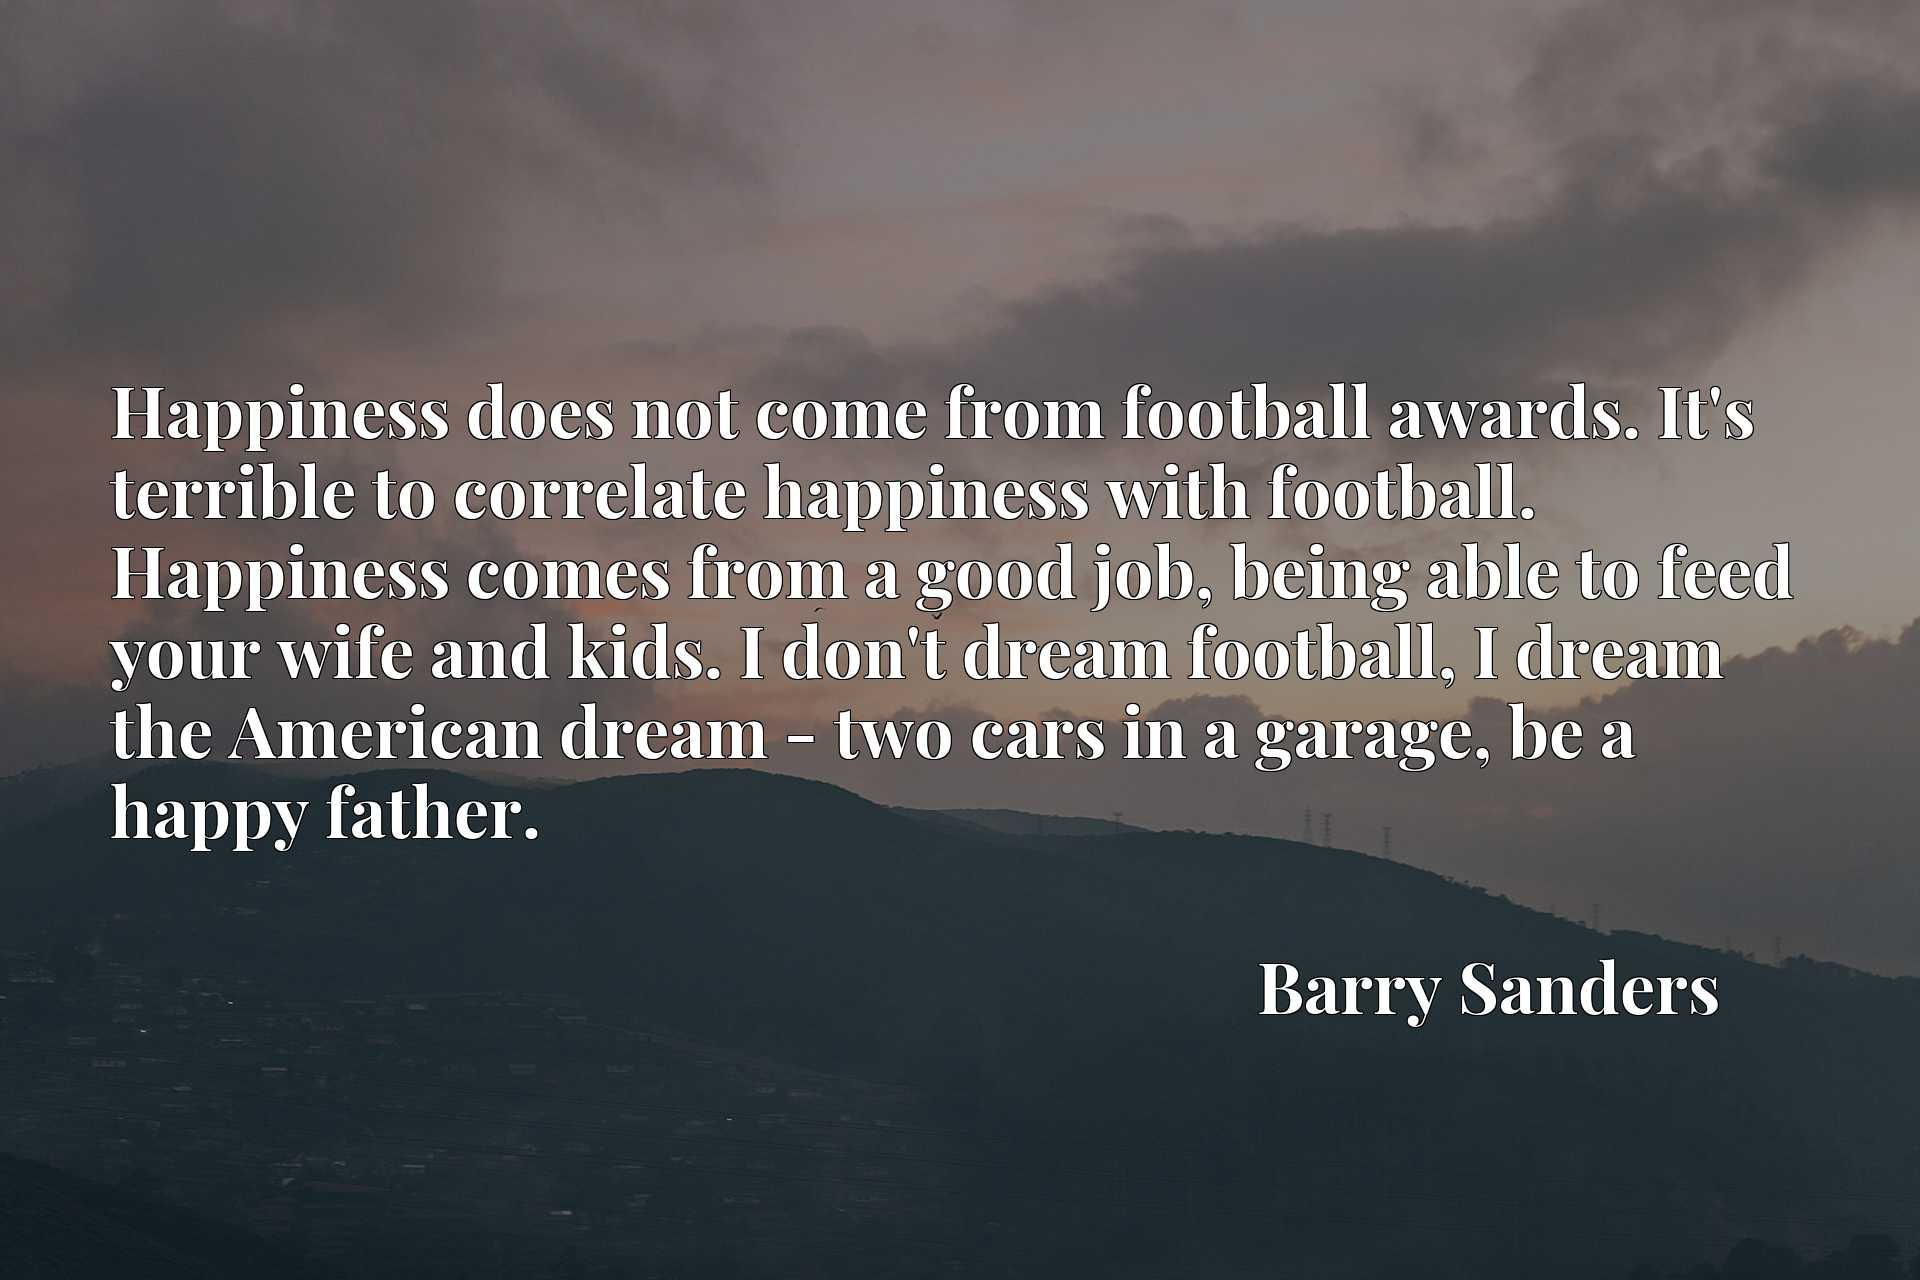 Happiness does not come from football awards. It's terrible to correlate happiness with football. Happiness comes from a good job, being able to feed your wife and kids. I don't dream football, I dream the American dream - two cars in a garage, be a happy father.